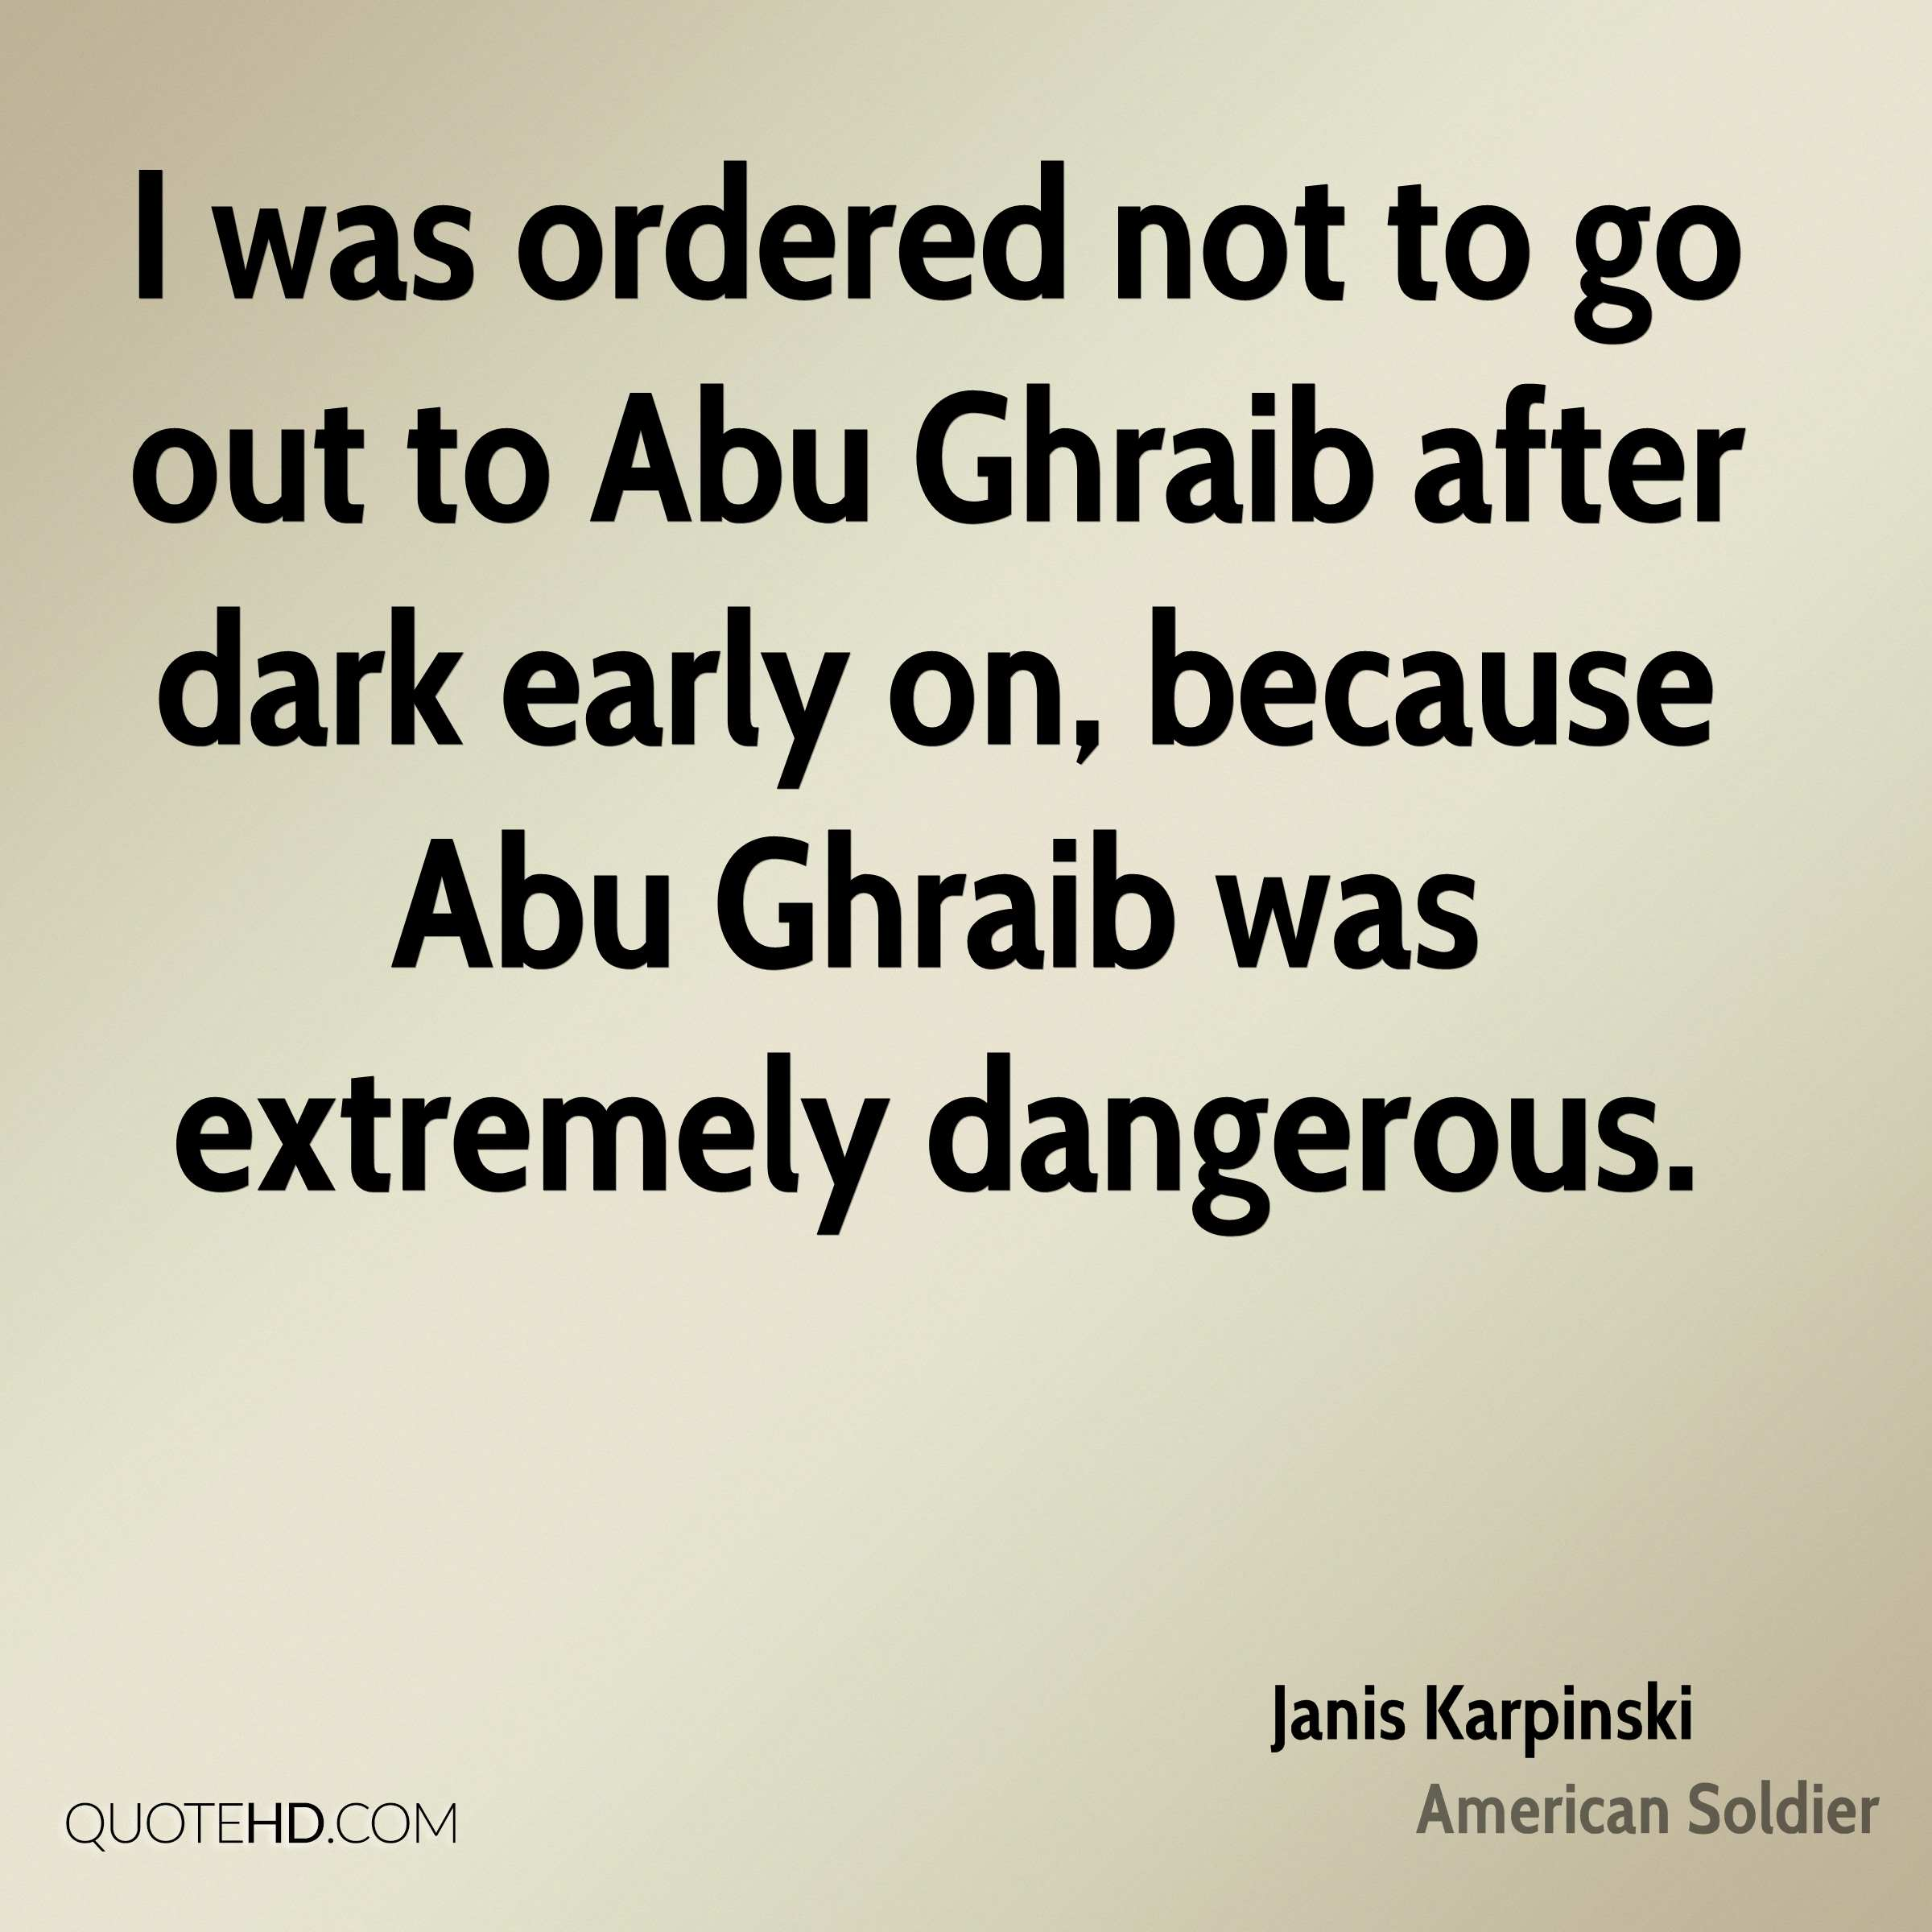 I was ordered not to go out to Abu Ghraib after dark early on, because Abu Ghraib was extremely dangerous.